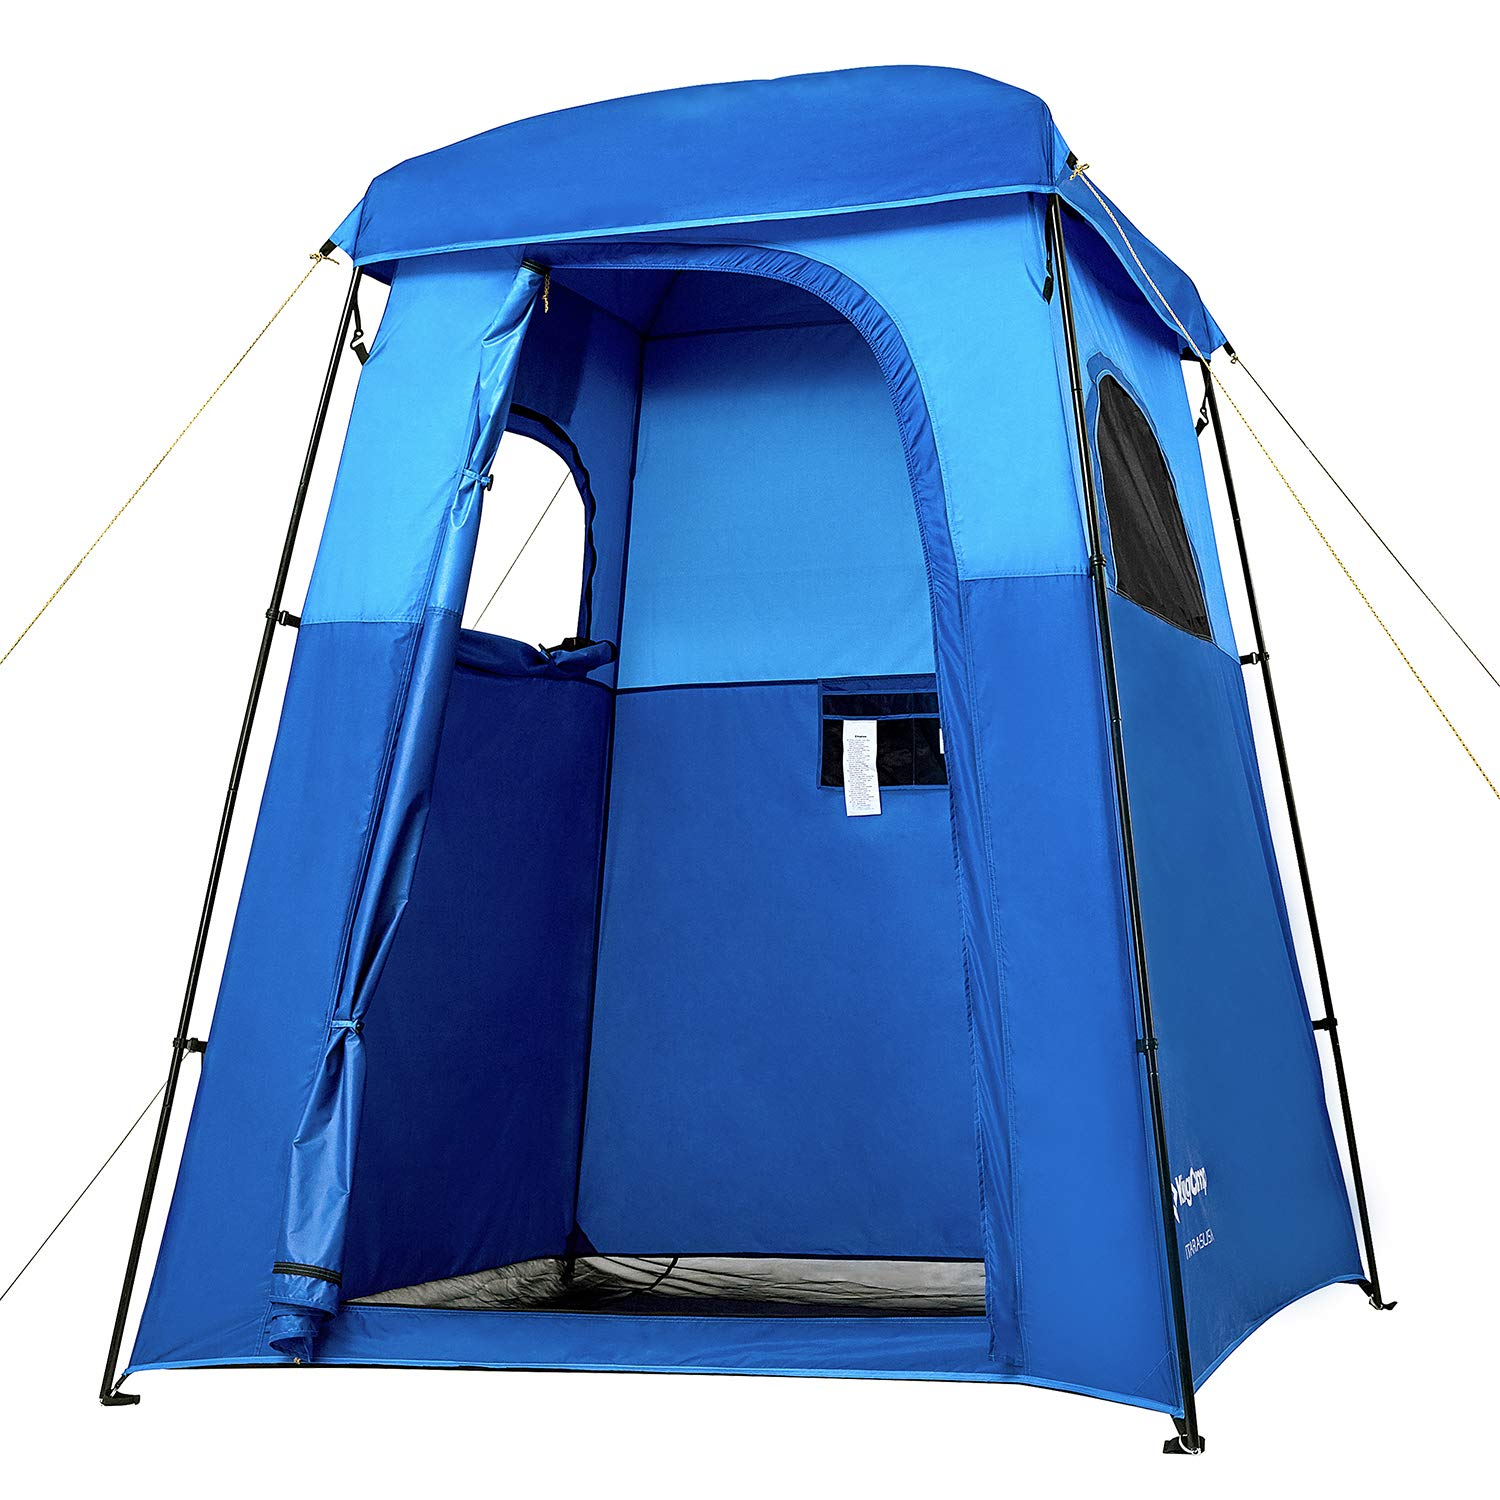 KingCamp Oversize Privacy Shelter Tent, Easy Set Up Portable Shower Tent, Privacy Toilet Tent, Changing Room, Rain Shelter with Window - for Camping and Beach with Portable Carrying Case by KingCamp